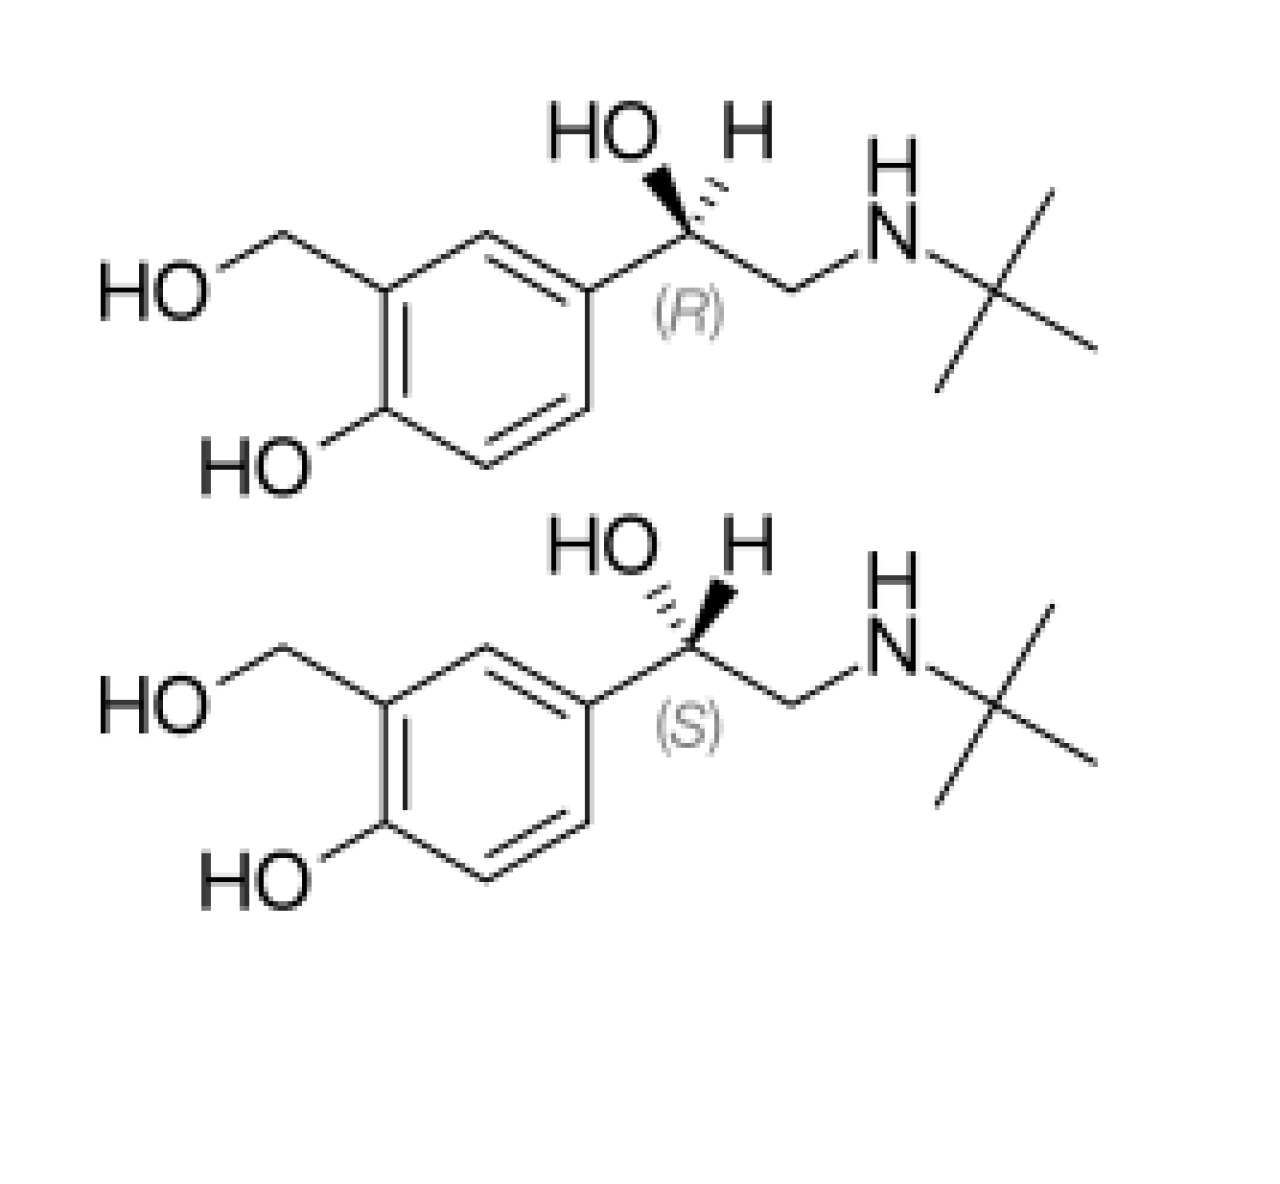 salbutamol-chemical-structure